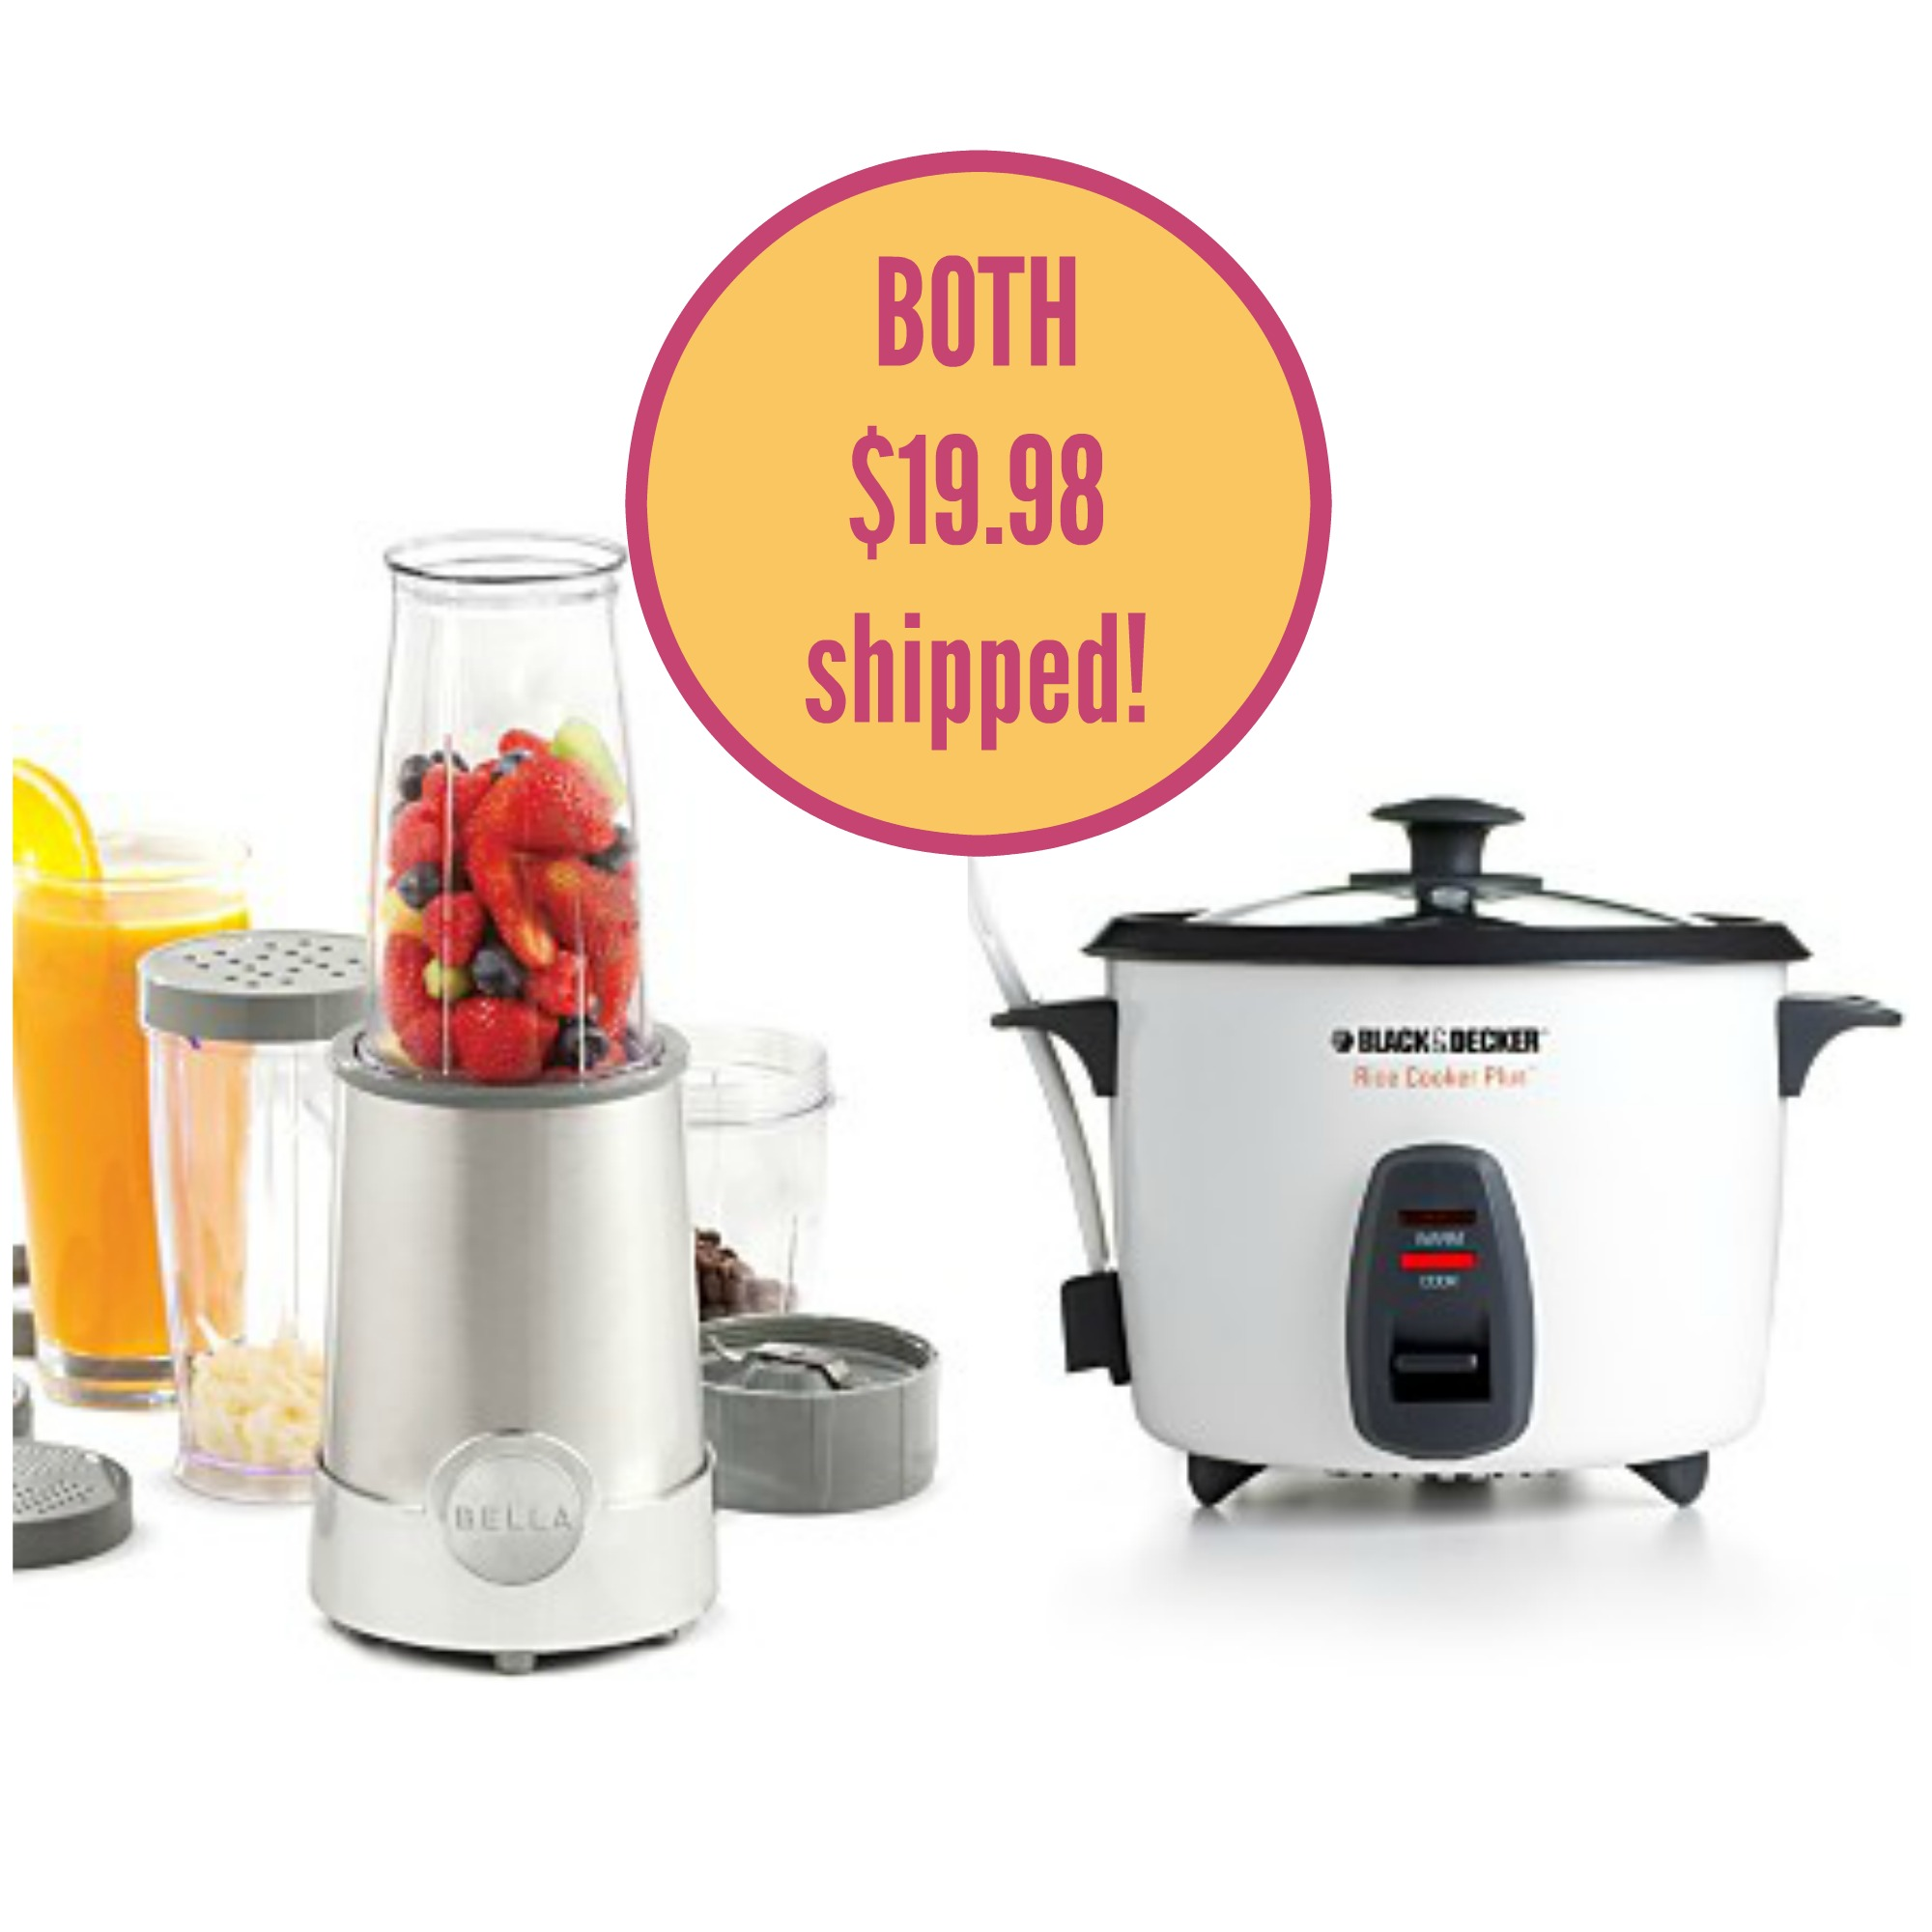 Bella Rocket Blender and Black & Decker Rice Cooker - $19.98 ...